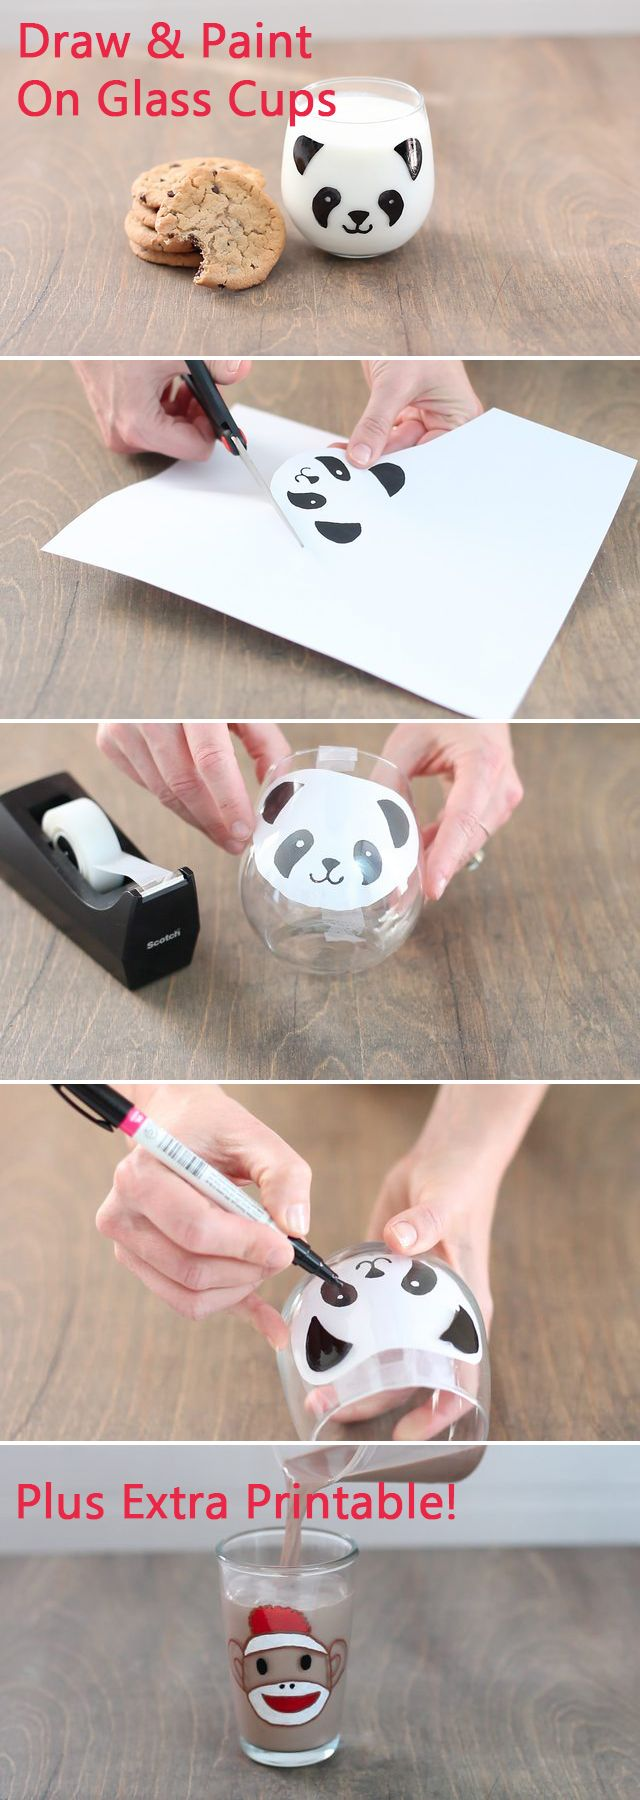 How adorable are these Panda (and sock monkey) glass milk cups! After drawing on the panda with our stencil, the milk fills in the rest! Just in time for Kung Fu Panda,  make these Panda cups at home with the kids and they'll LOVE drinking their milk.  Both printables available for free here: http://www.ehow.com/how_5911306_draw-paint-glass.html?utm_source=facebook.com&utm_medium=referral&utm_content=freestyle&utm_campaign=fanpage